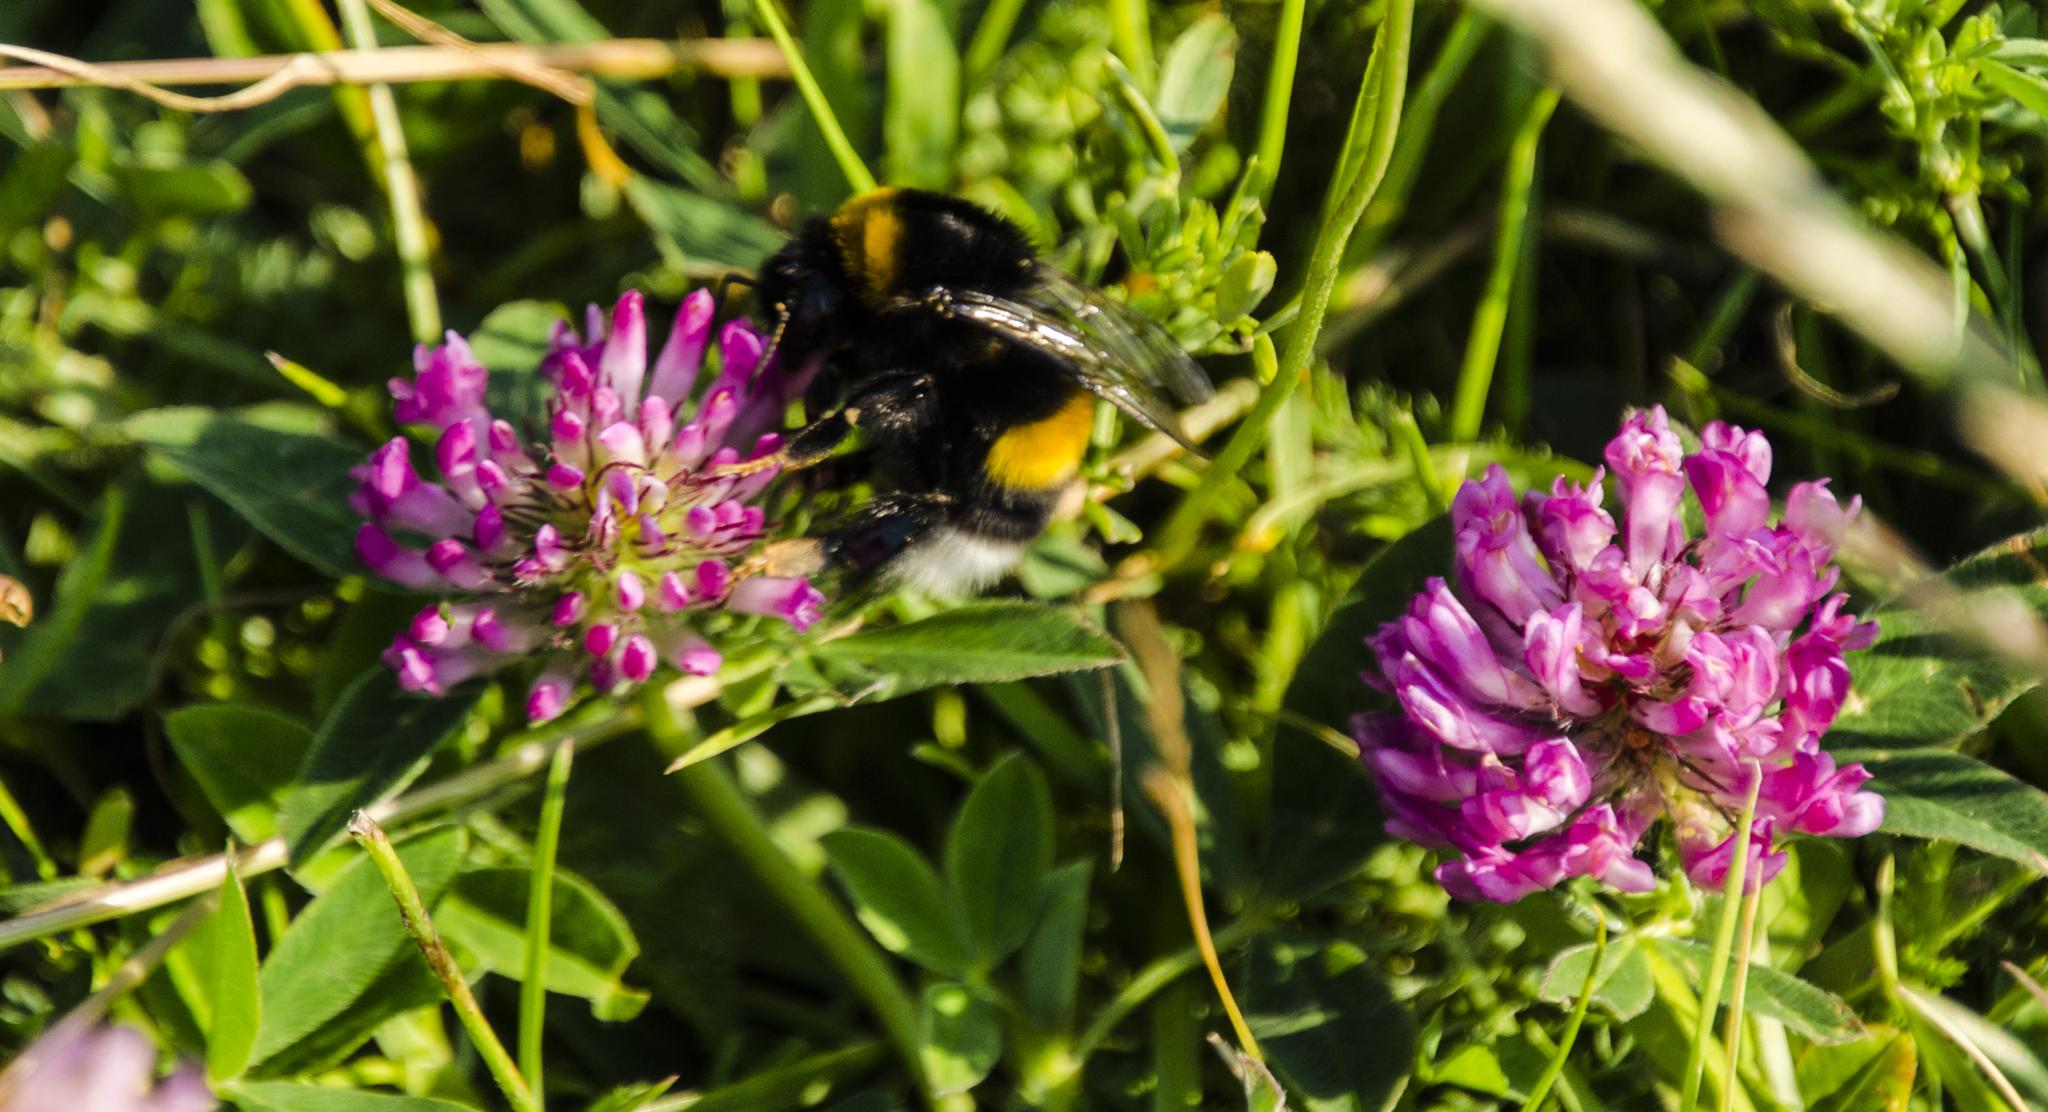 Flower and Bumblebee by Johnny Lythell